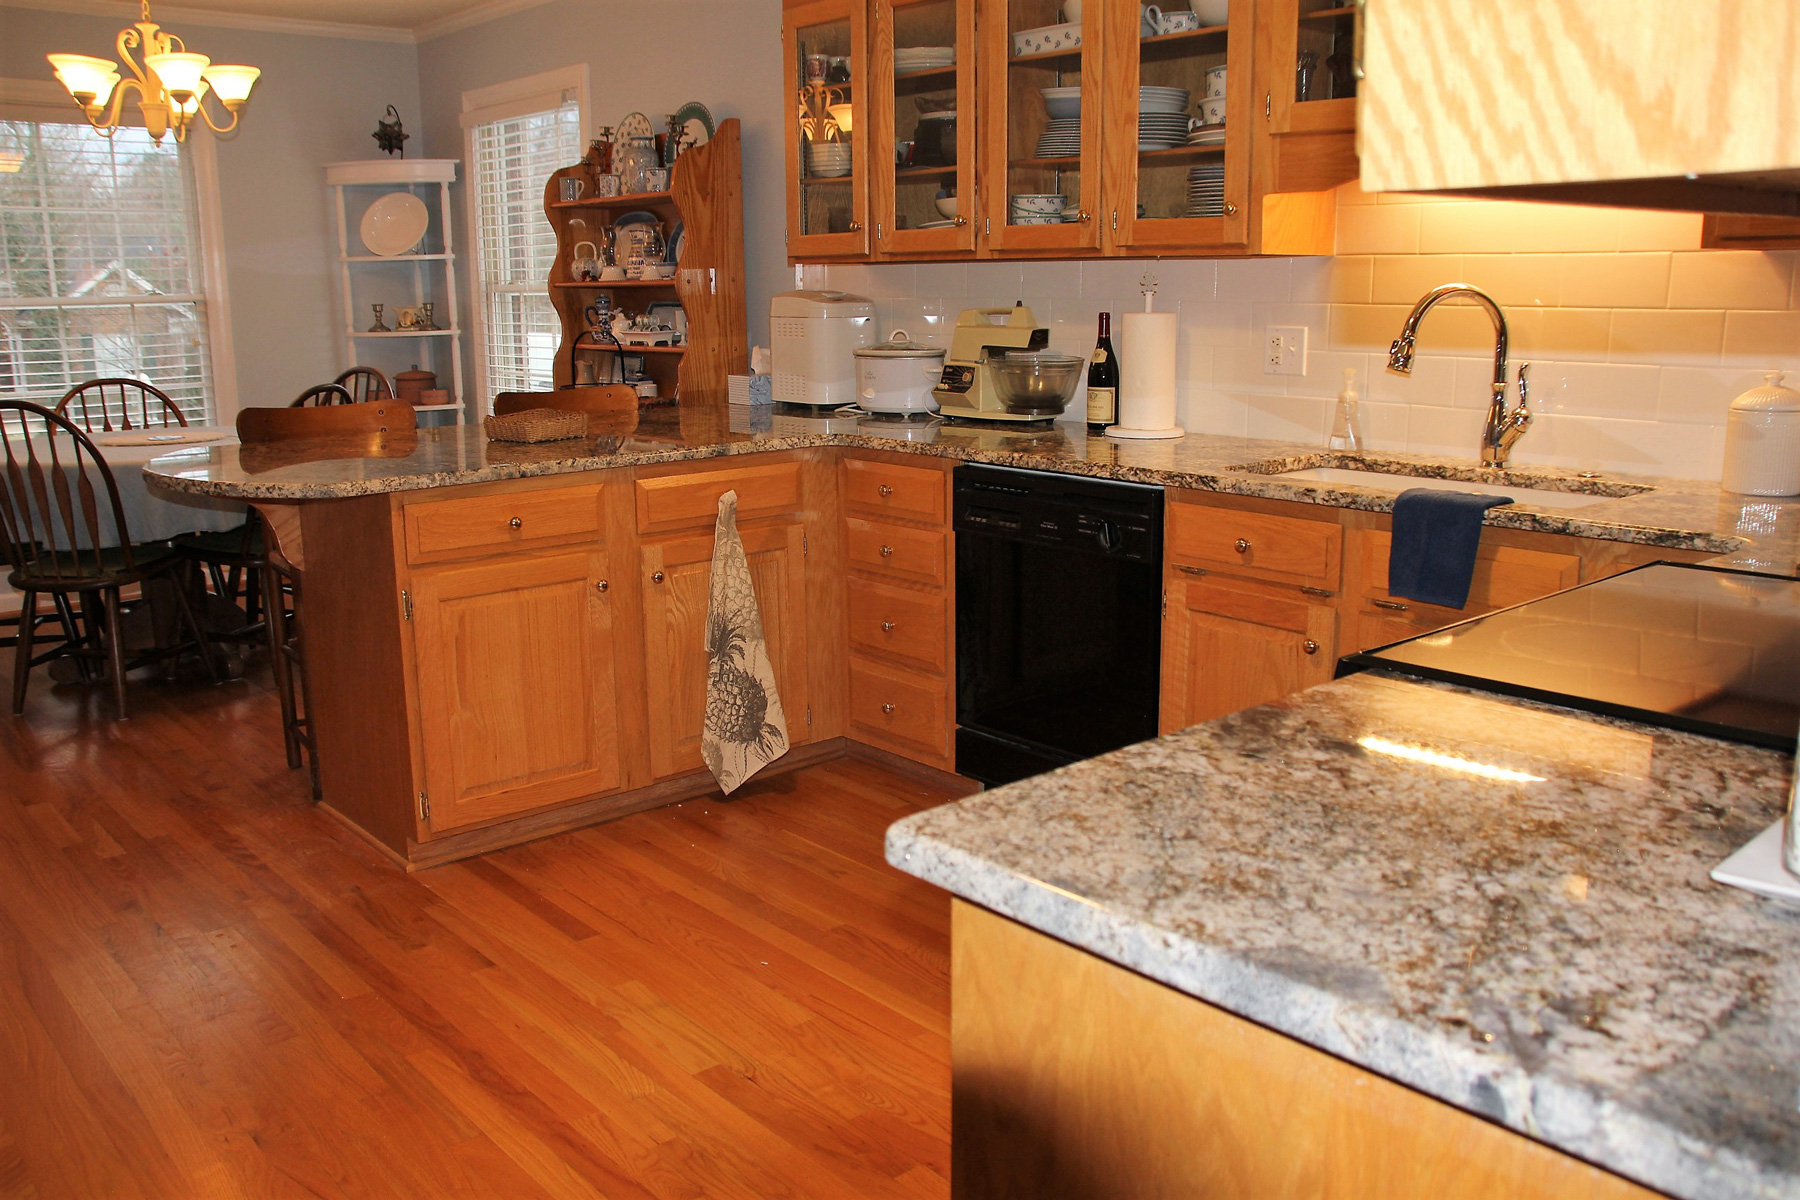 ... The Existing Golden Oak Cabinets, Since They Offered Clean Lines And  Sturdy Construction. Gorgeous New Blue Flower Granite Countertops Really  Make Those ...